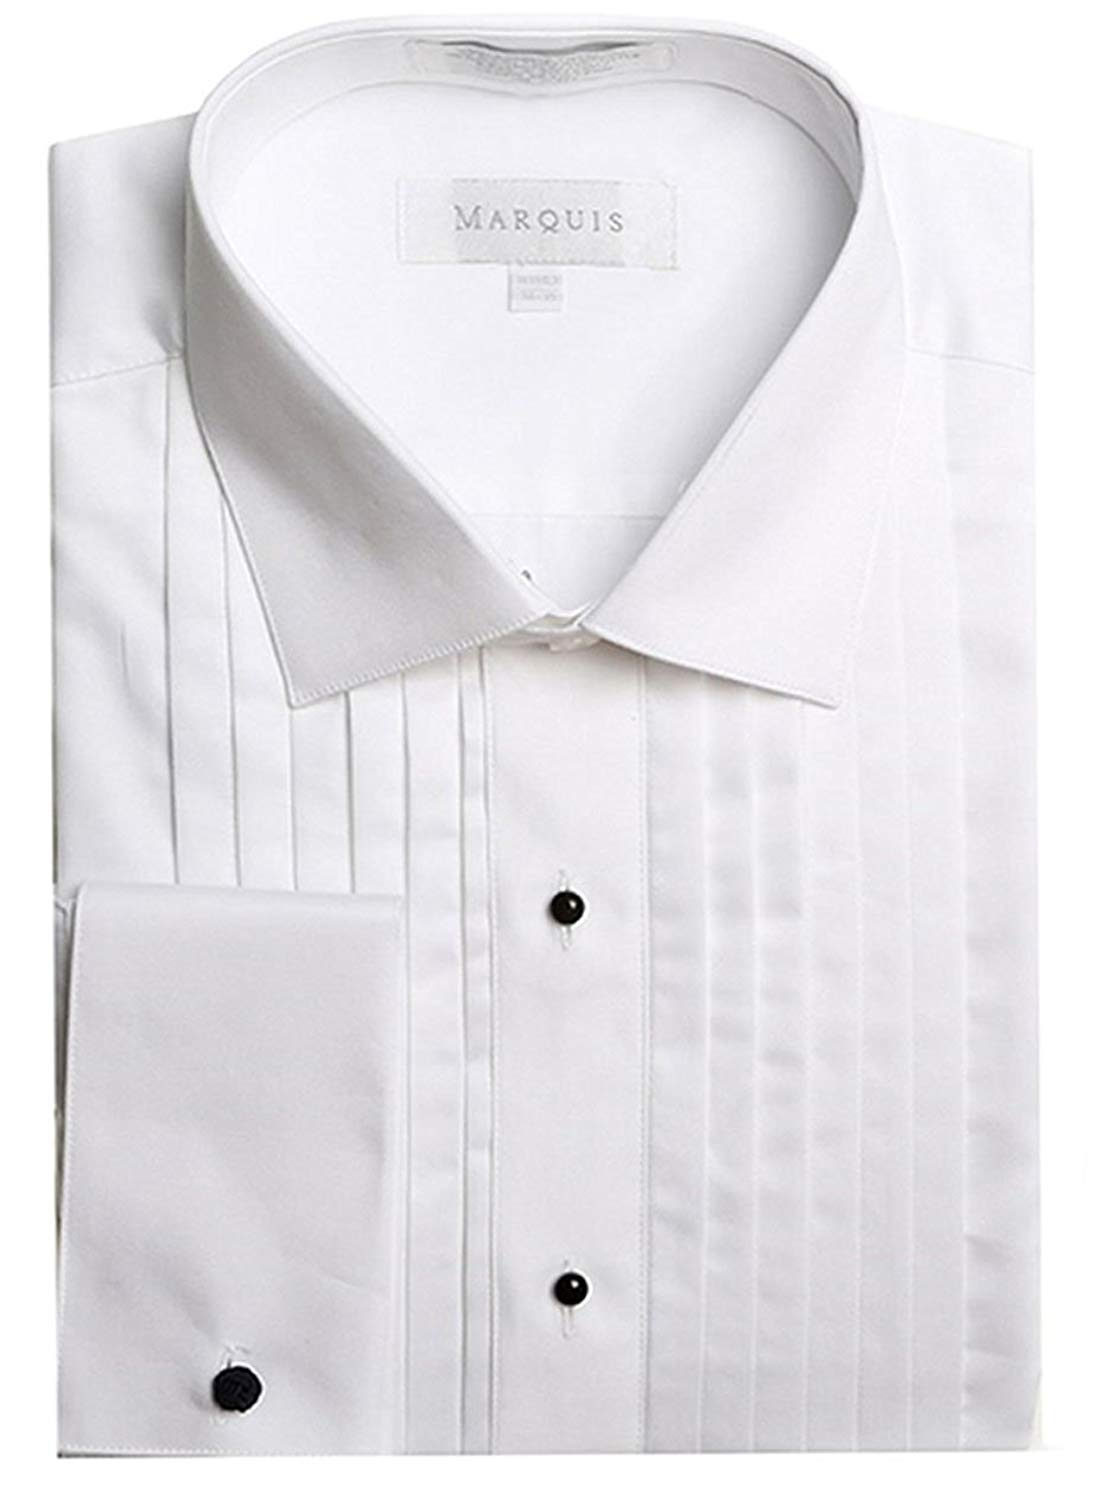 Marquis Men's French Cuff Lay Down Collar Tuxedo Shirt (Cufflinks Included) (16.5 34/35, White)